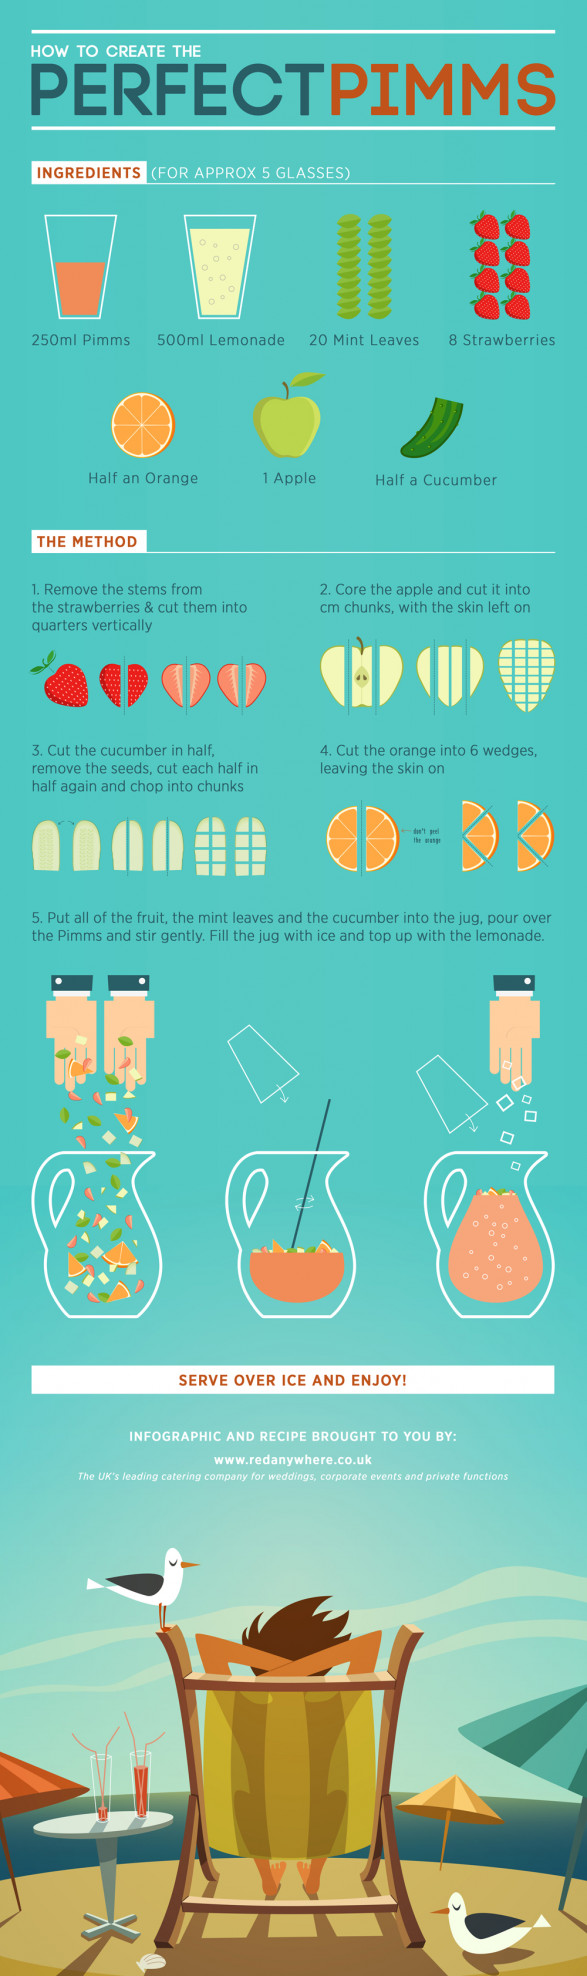 How to Create the Perfect Pimms